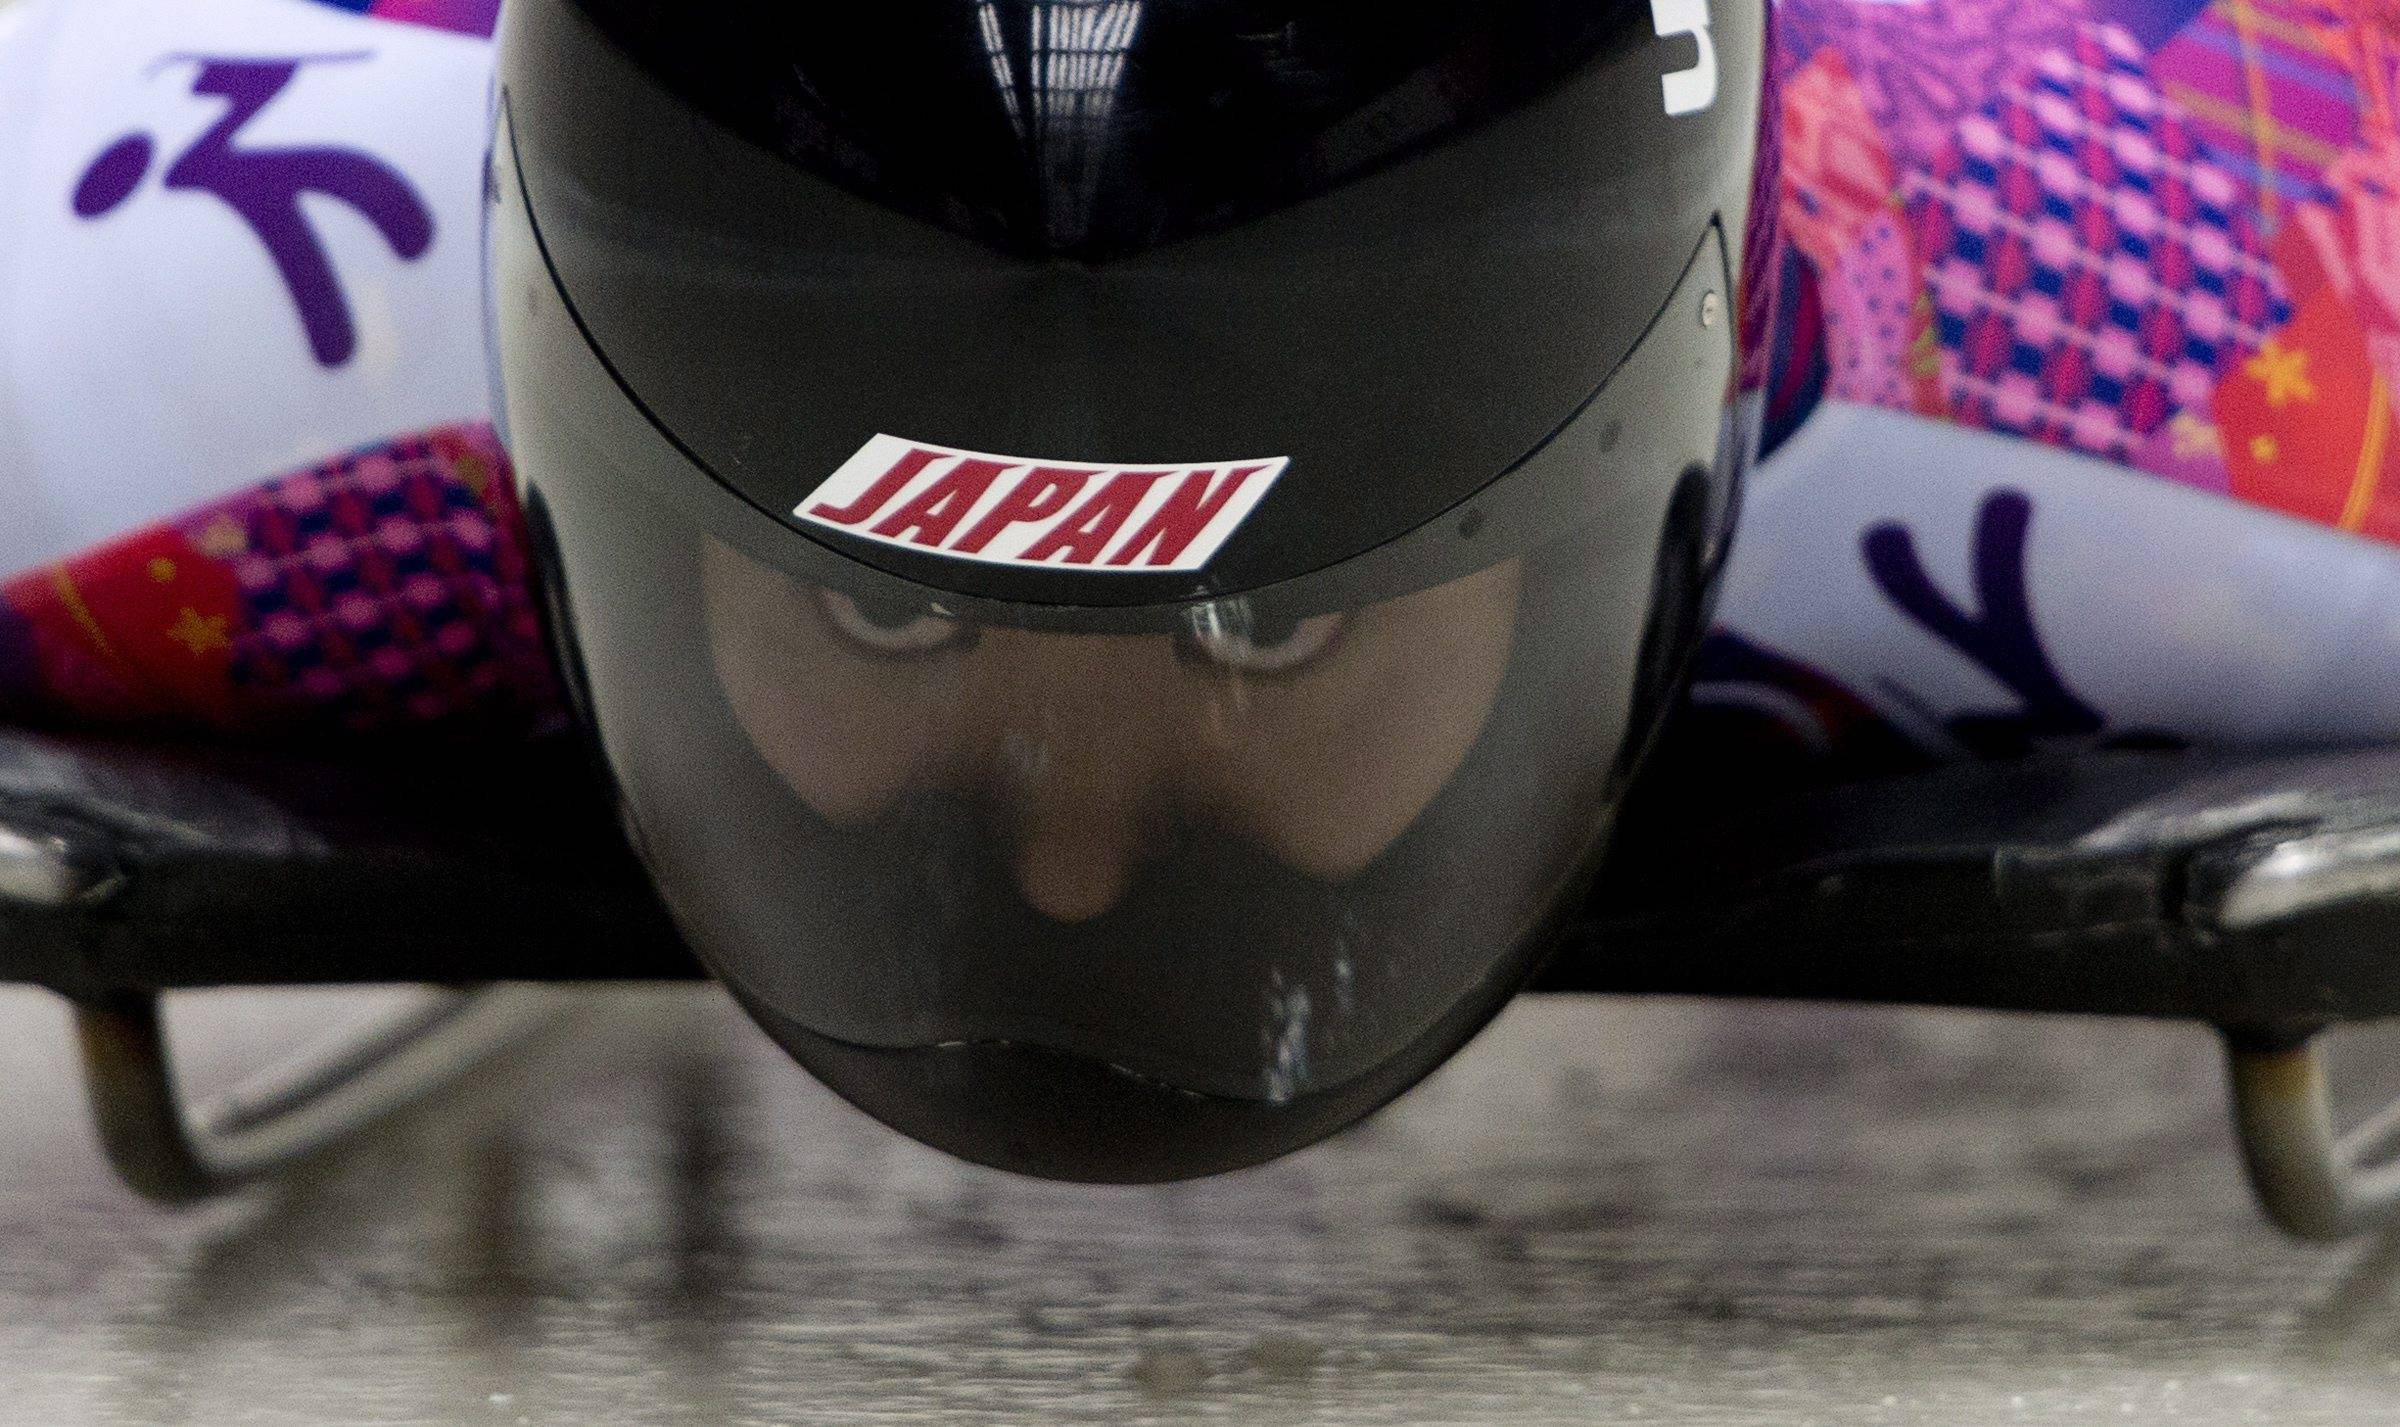 Nozomi Komuro of Japan, focuses on her run as she speeds down the track during the women's skeleton competition.